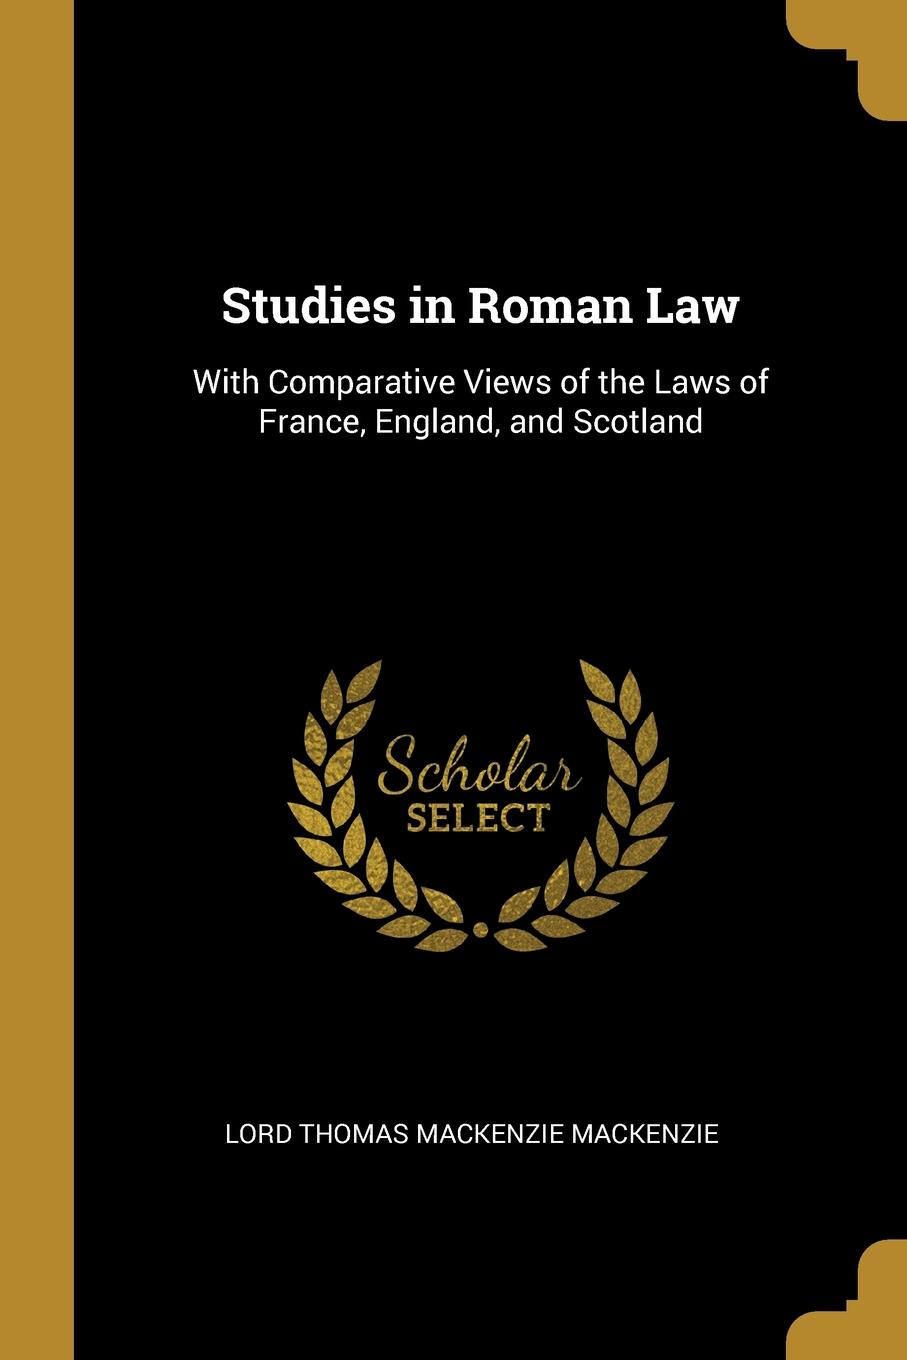 Lord Thomas Mackenzie Mackenzie Studies in Roman Law. With Comparative Views of the Laws of France, England, and Scotland studies in roman law with comparative views of the laws of france england and scotland